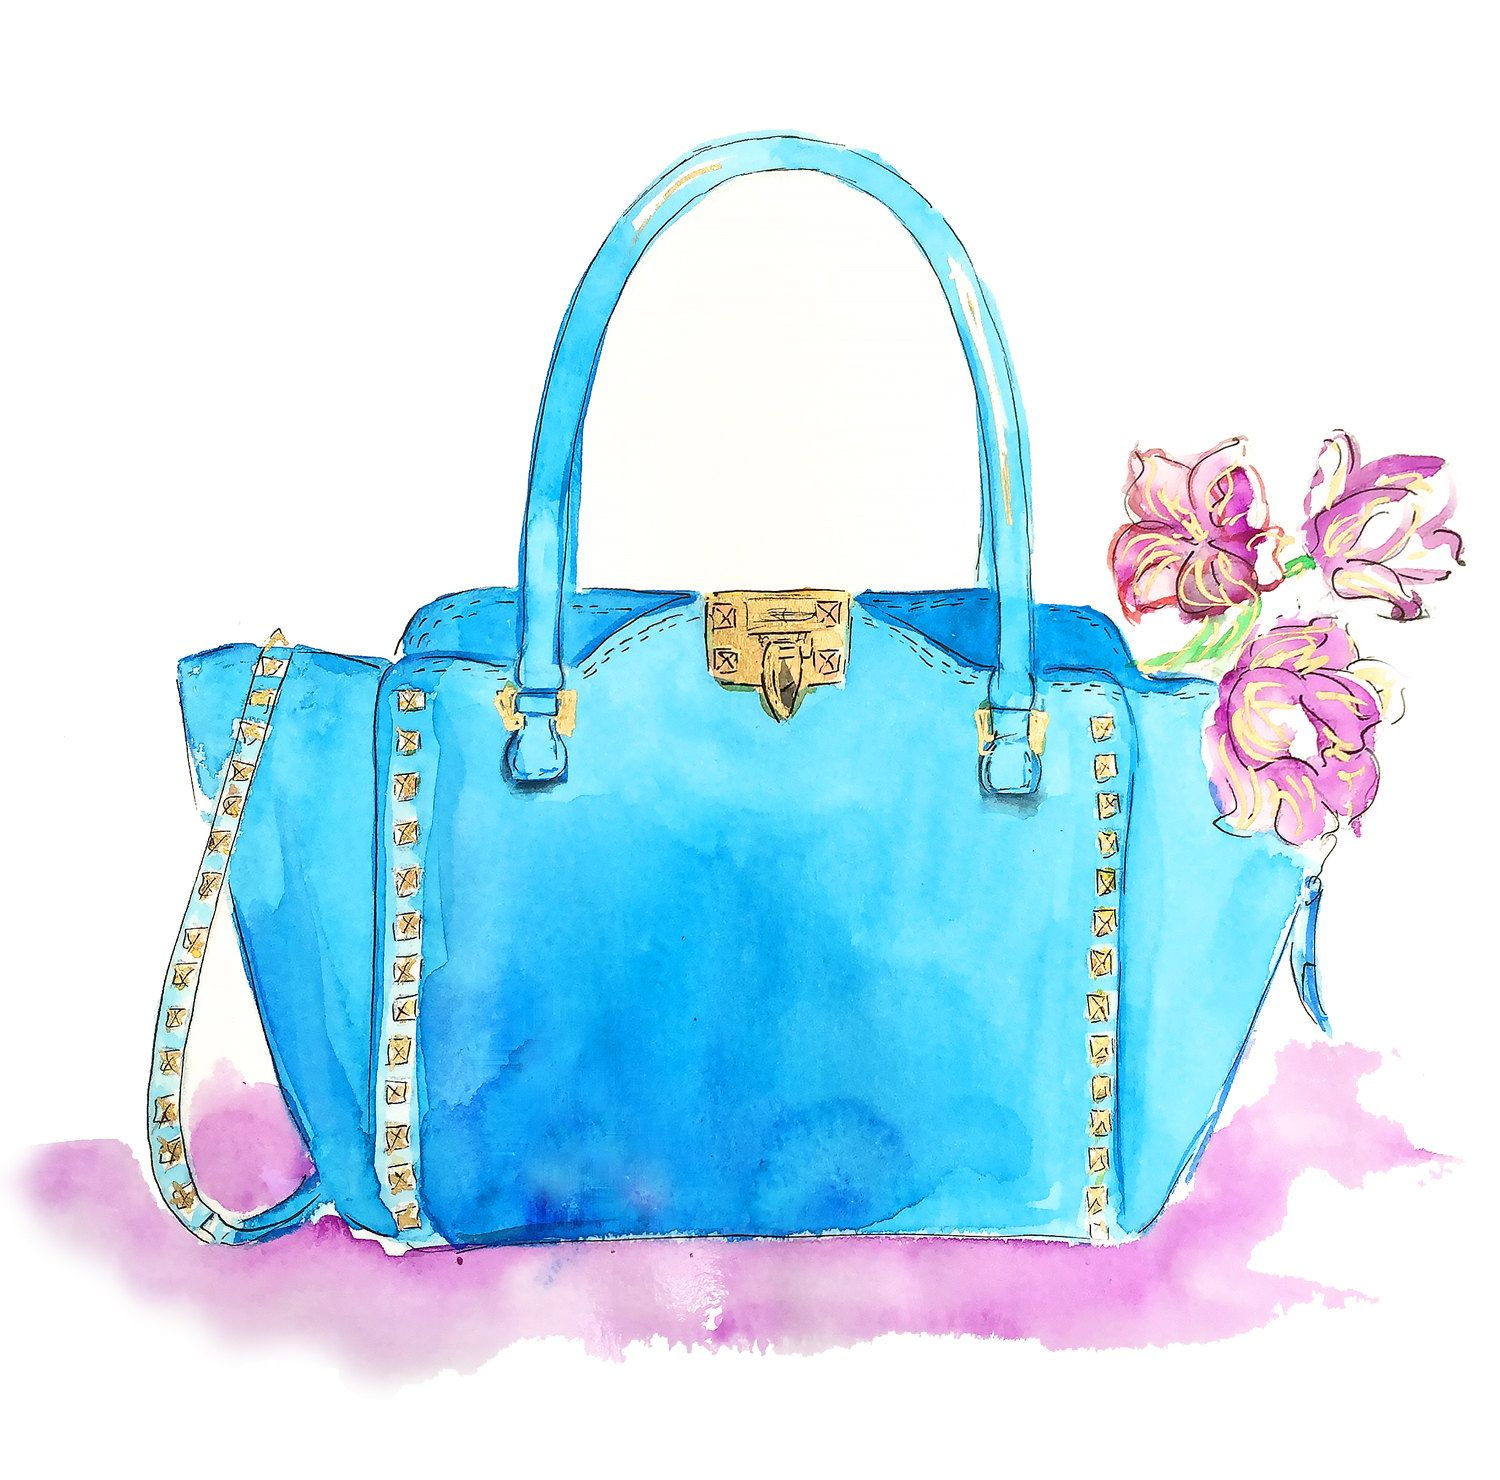 Fashion Illustration Print Valentino Bag Illustration Watercolor